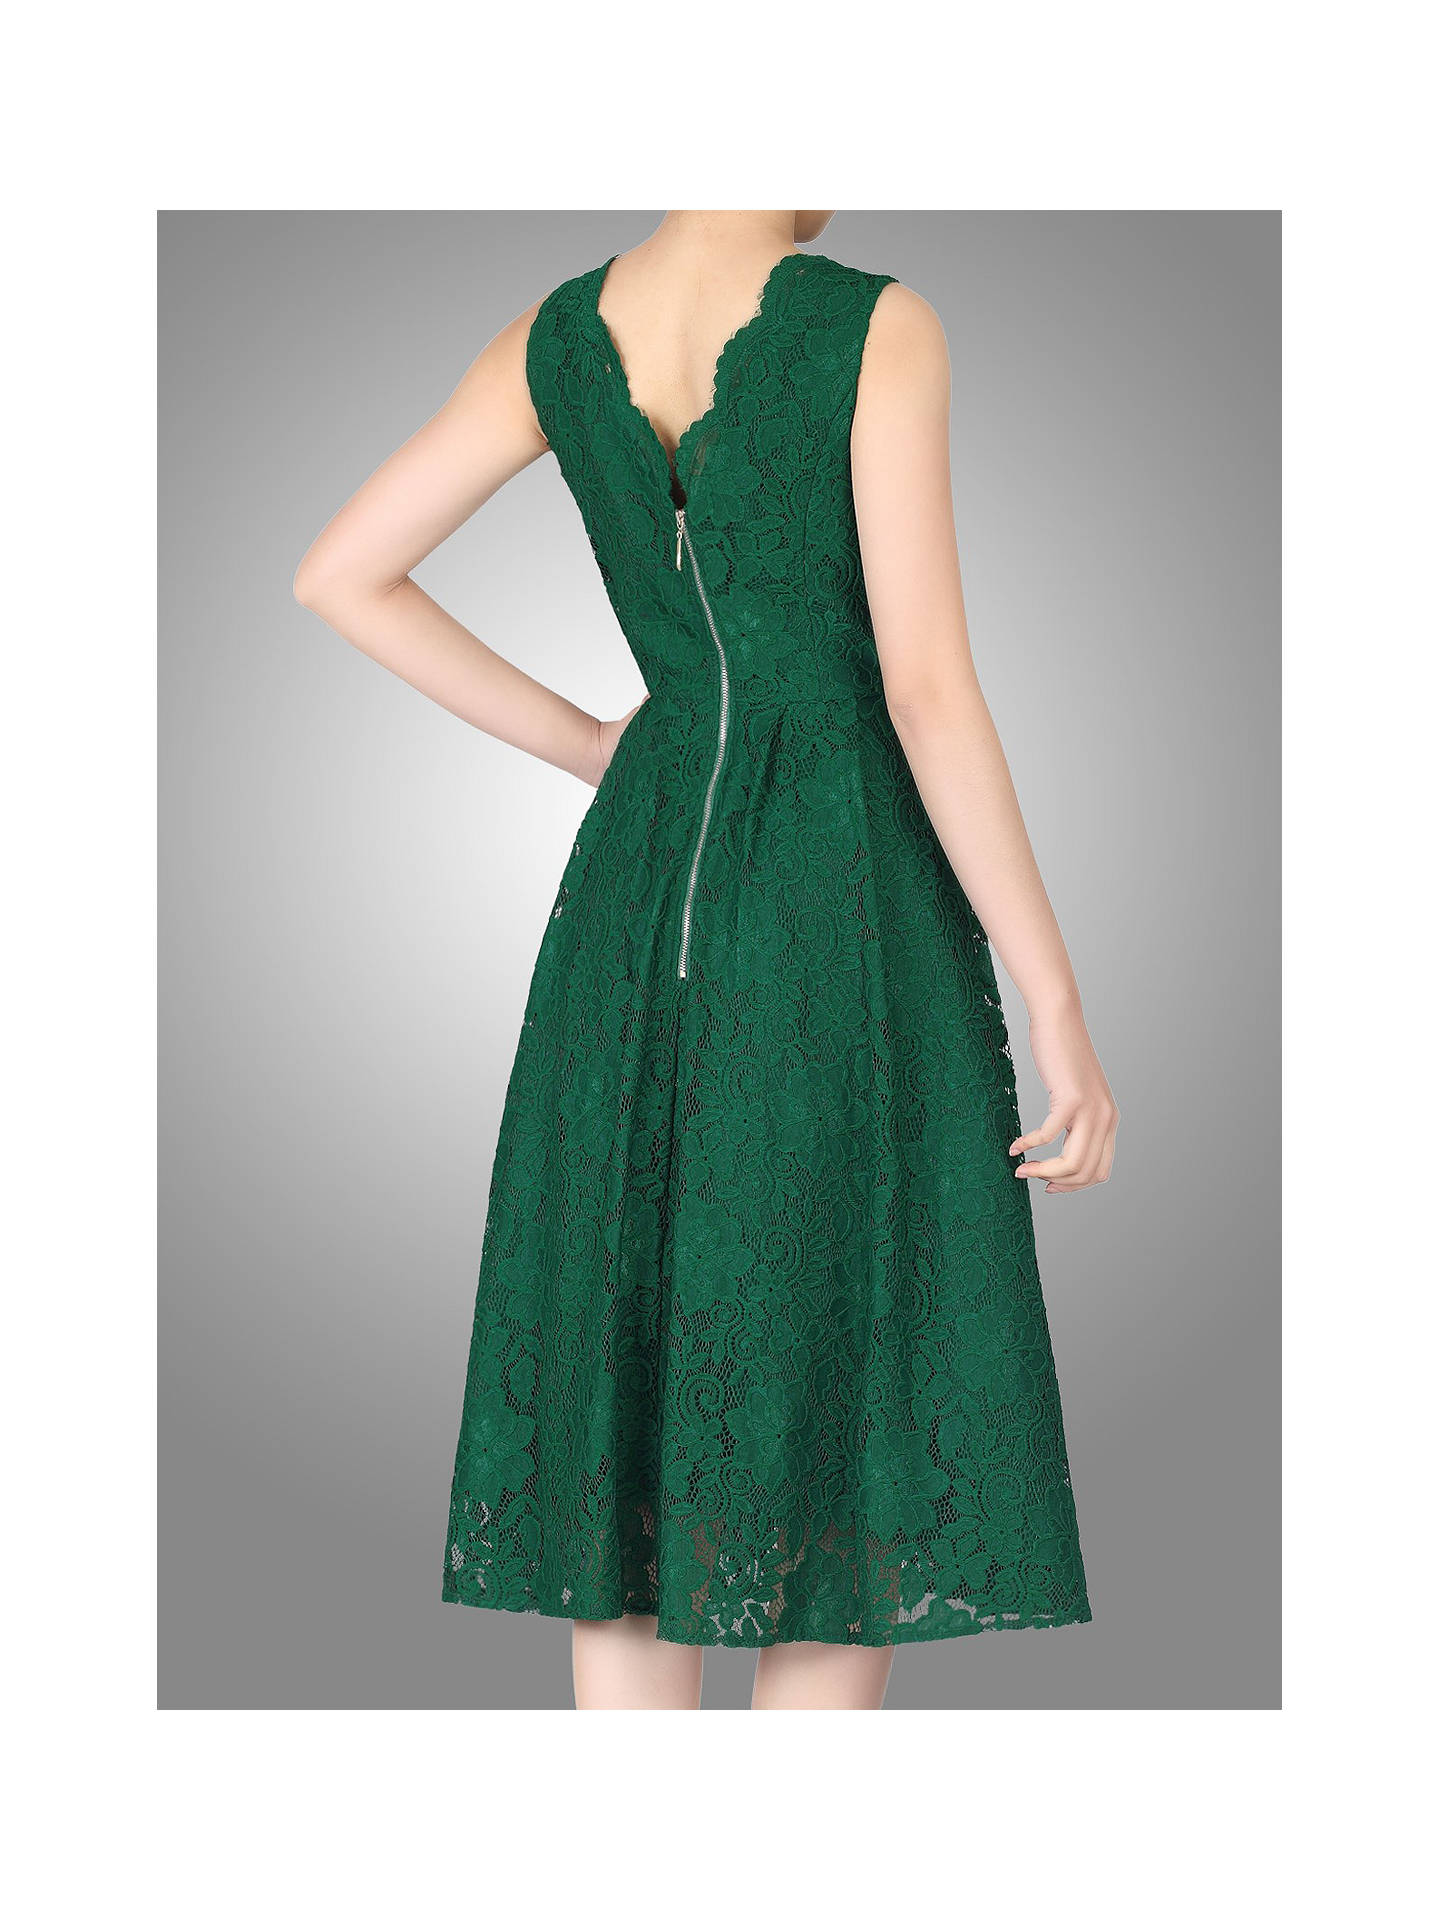 BuyJolie Moi Scalloped Lace Prom Dress, Green, 8 Online at johnlewis.com